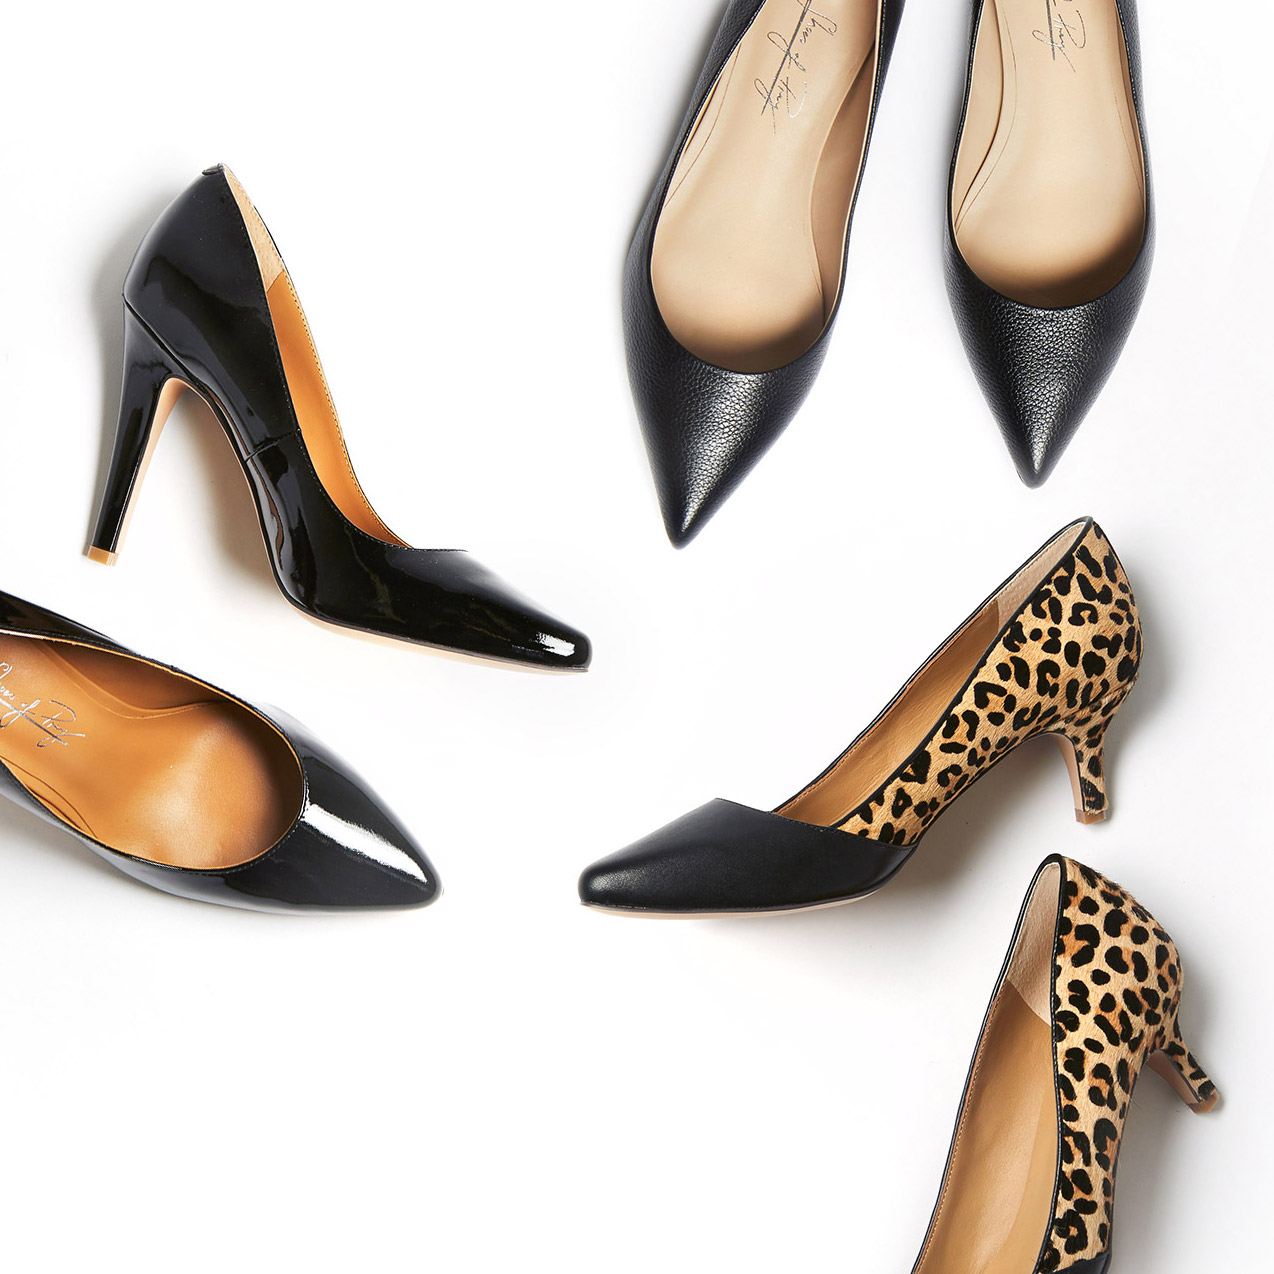 Black to work - 3 shoe styles for work